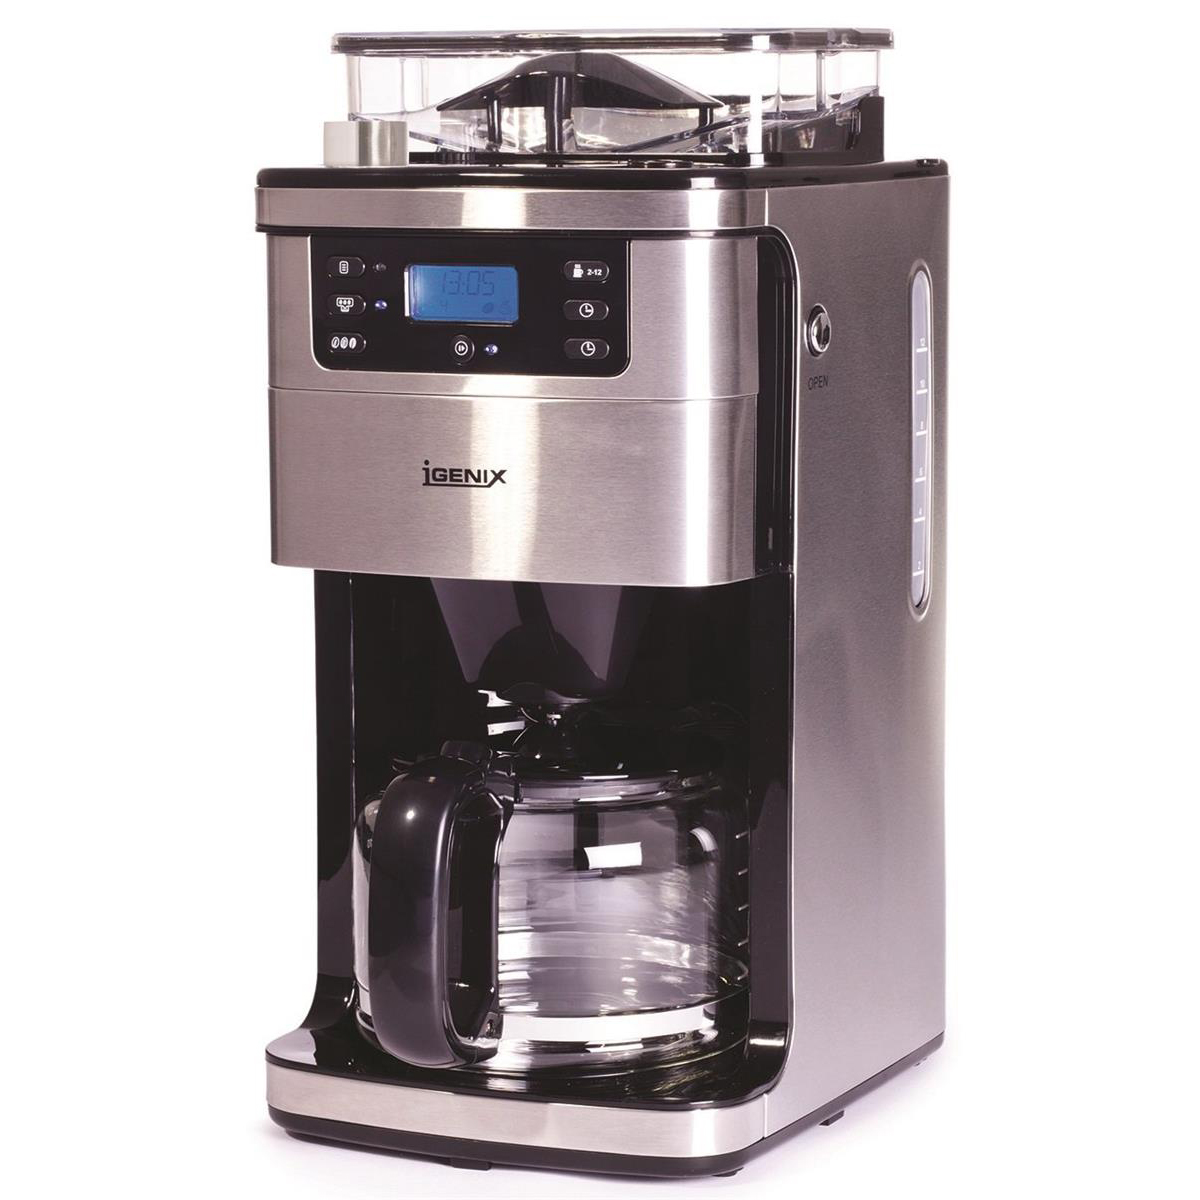 Igenix Digital Coffee Maker LCD Display Keep Warm 1.5L 12 Cup Capacity Ref IG 8225